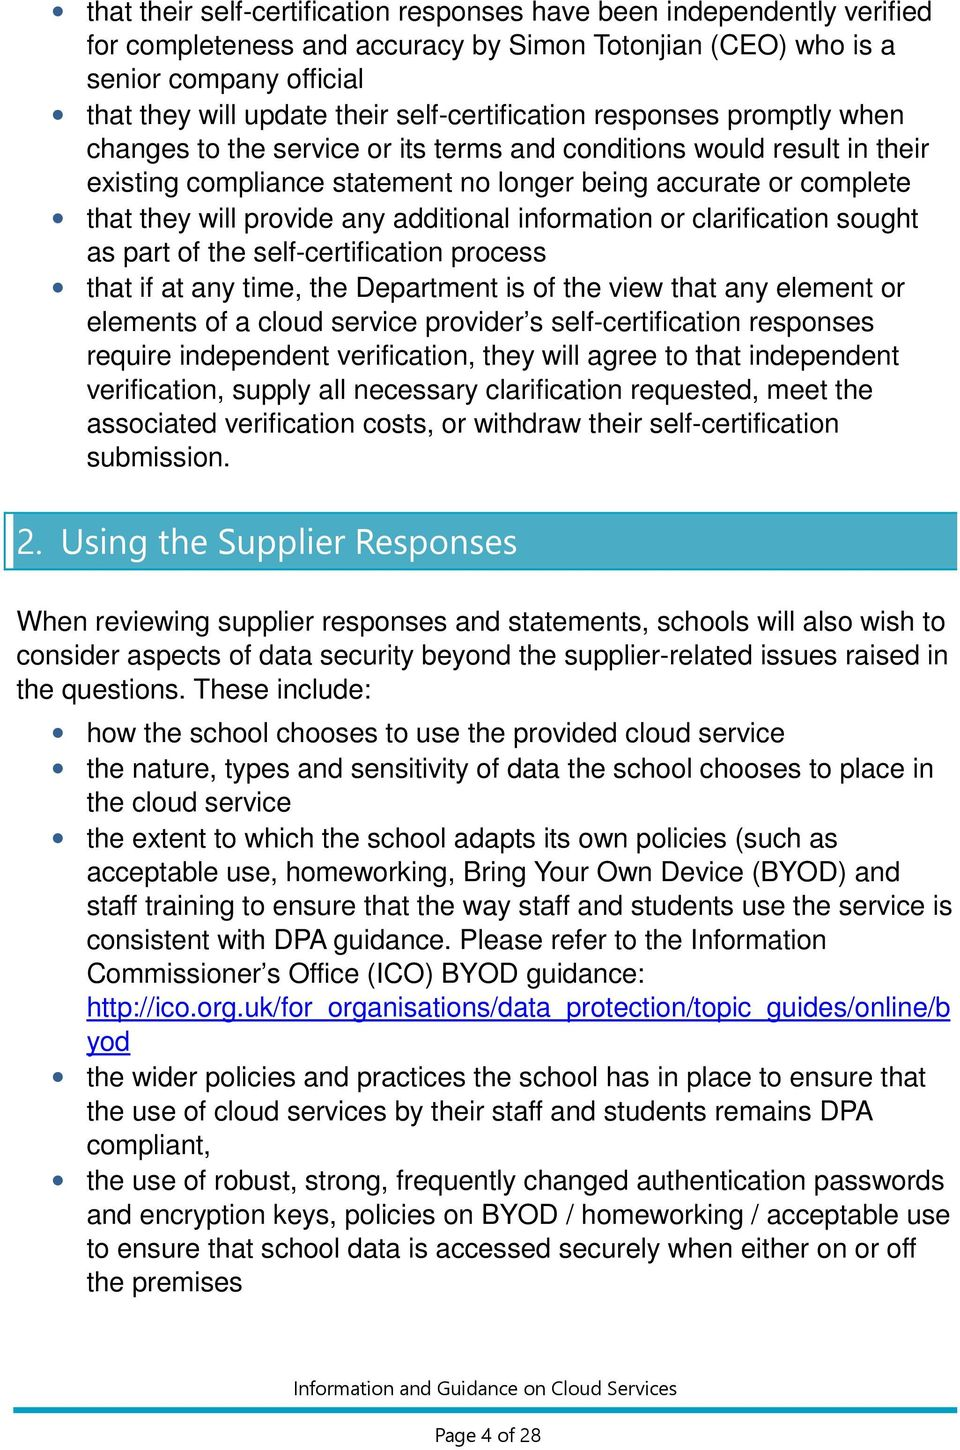 provide any additional information or clarification sought as part of the self-certification process that if at any time, the Department is of the view that any element or elements of a cloud service